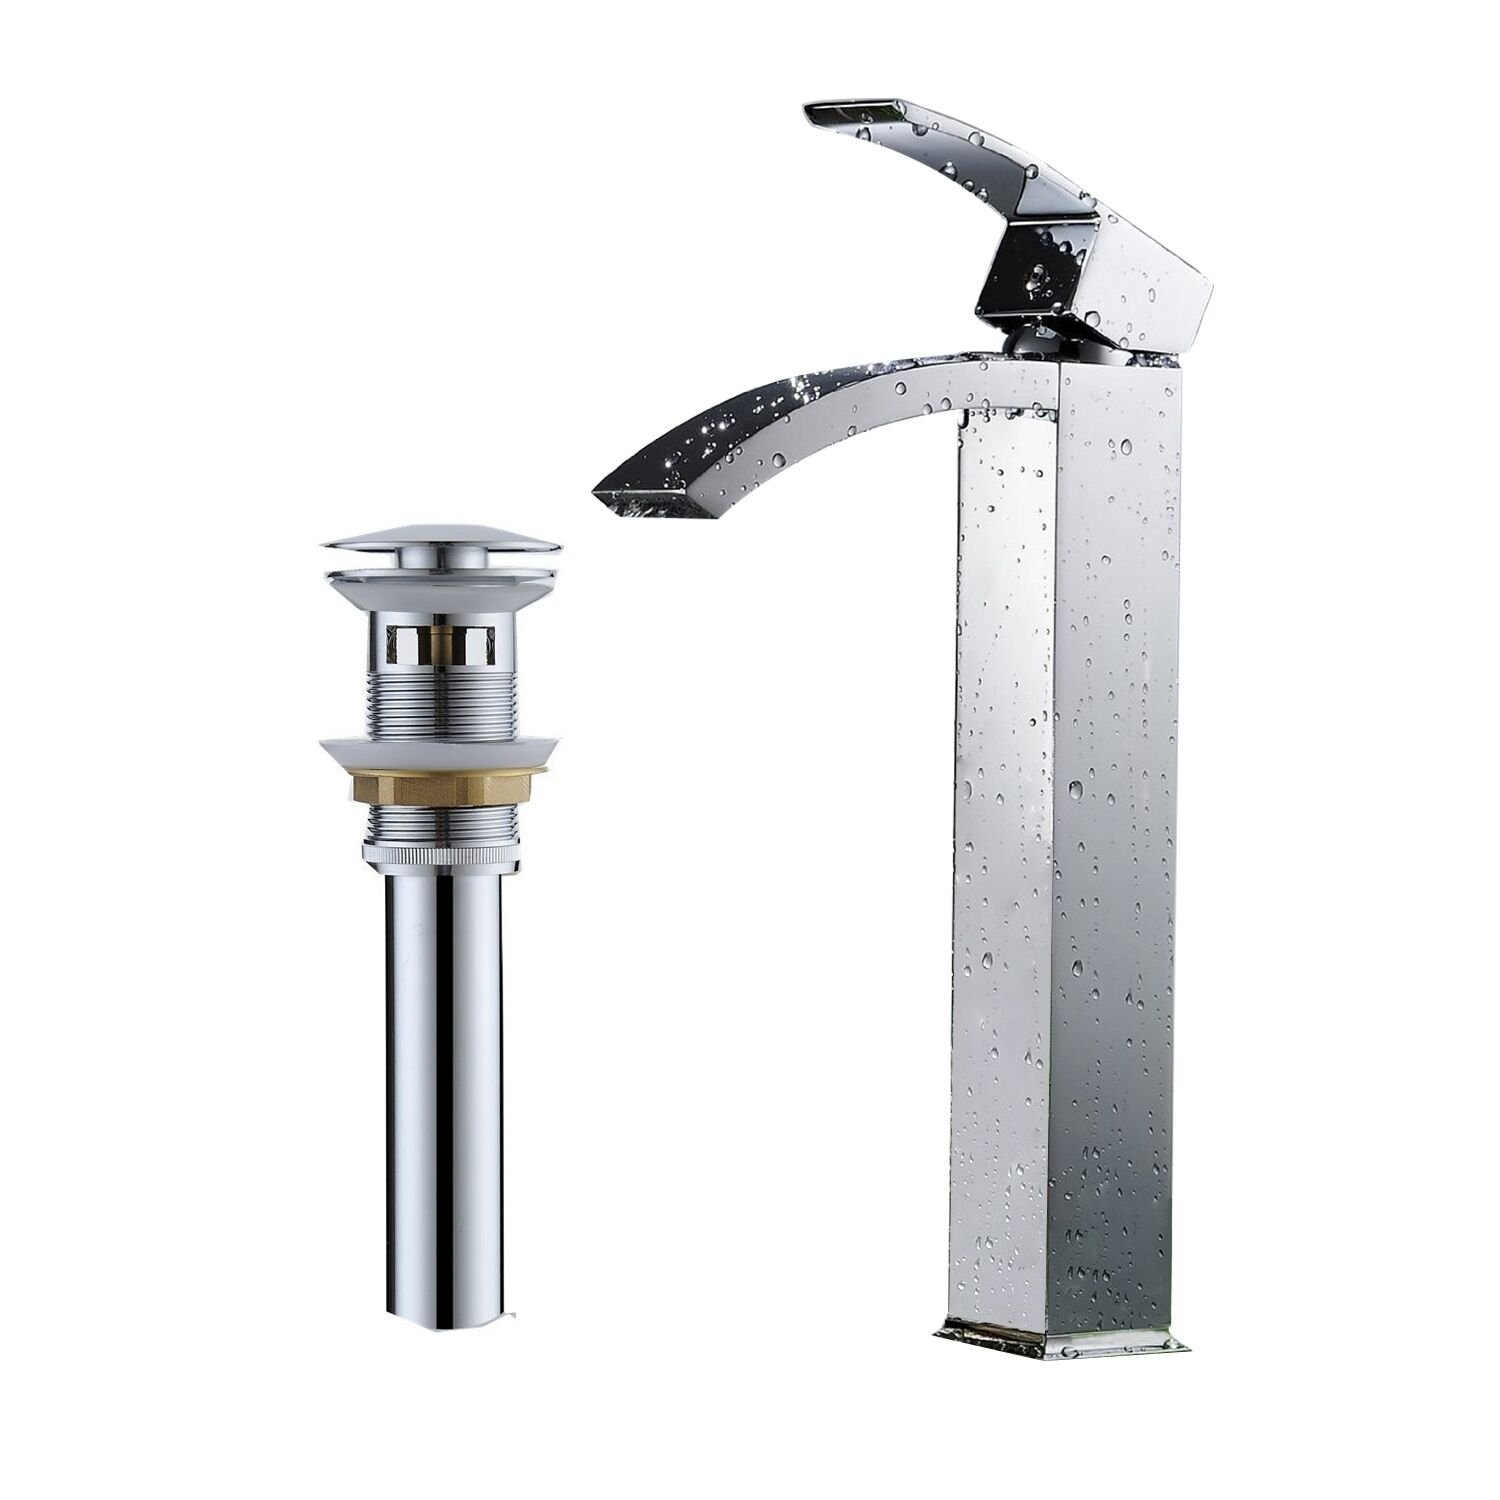 Greenspring Tall Spout Brass Bathroom Sink Vessel Faucet Basin Mixer Tap With Overflow Pop Up Drain,Chrome Finished